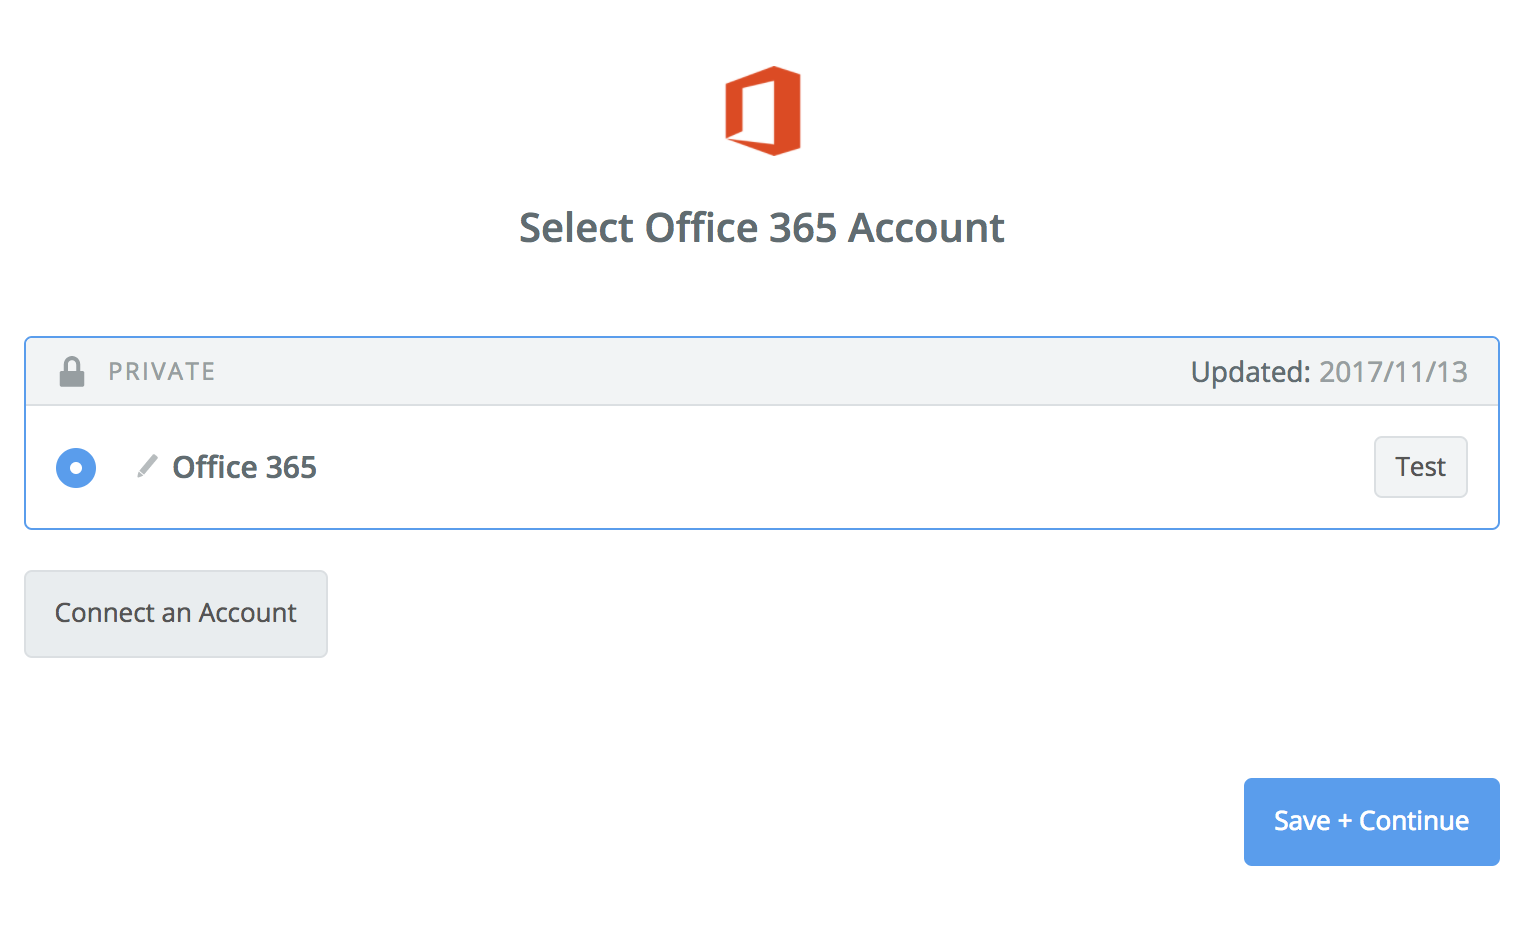 Office 365 Account Test